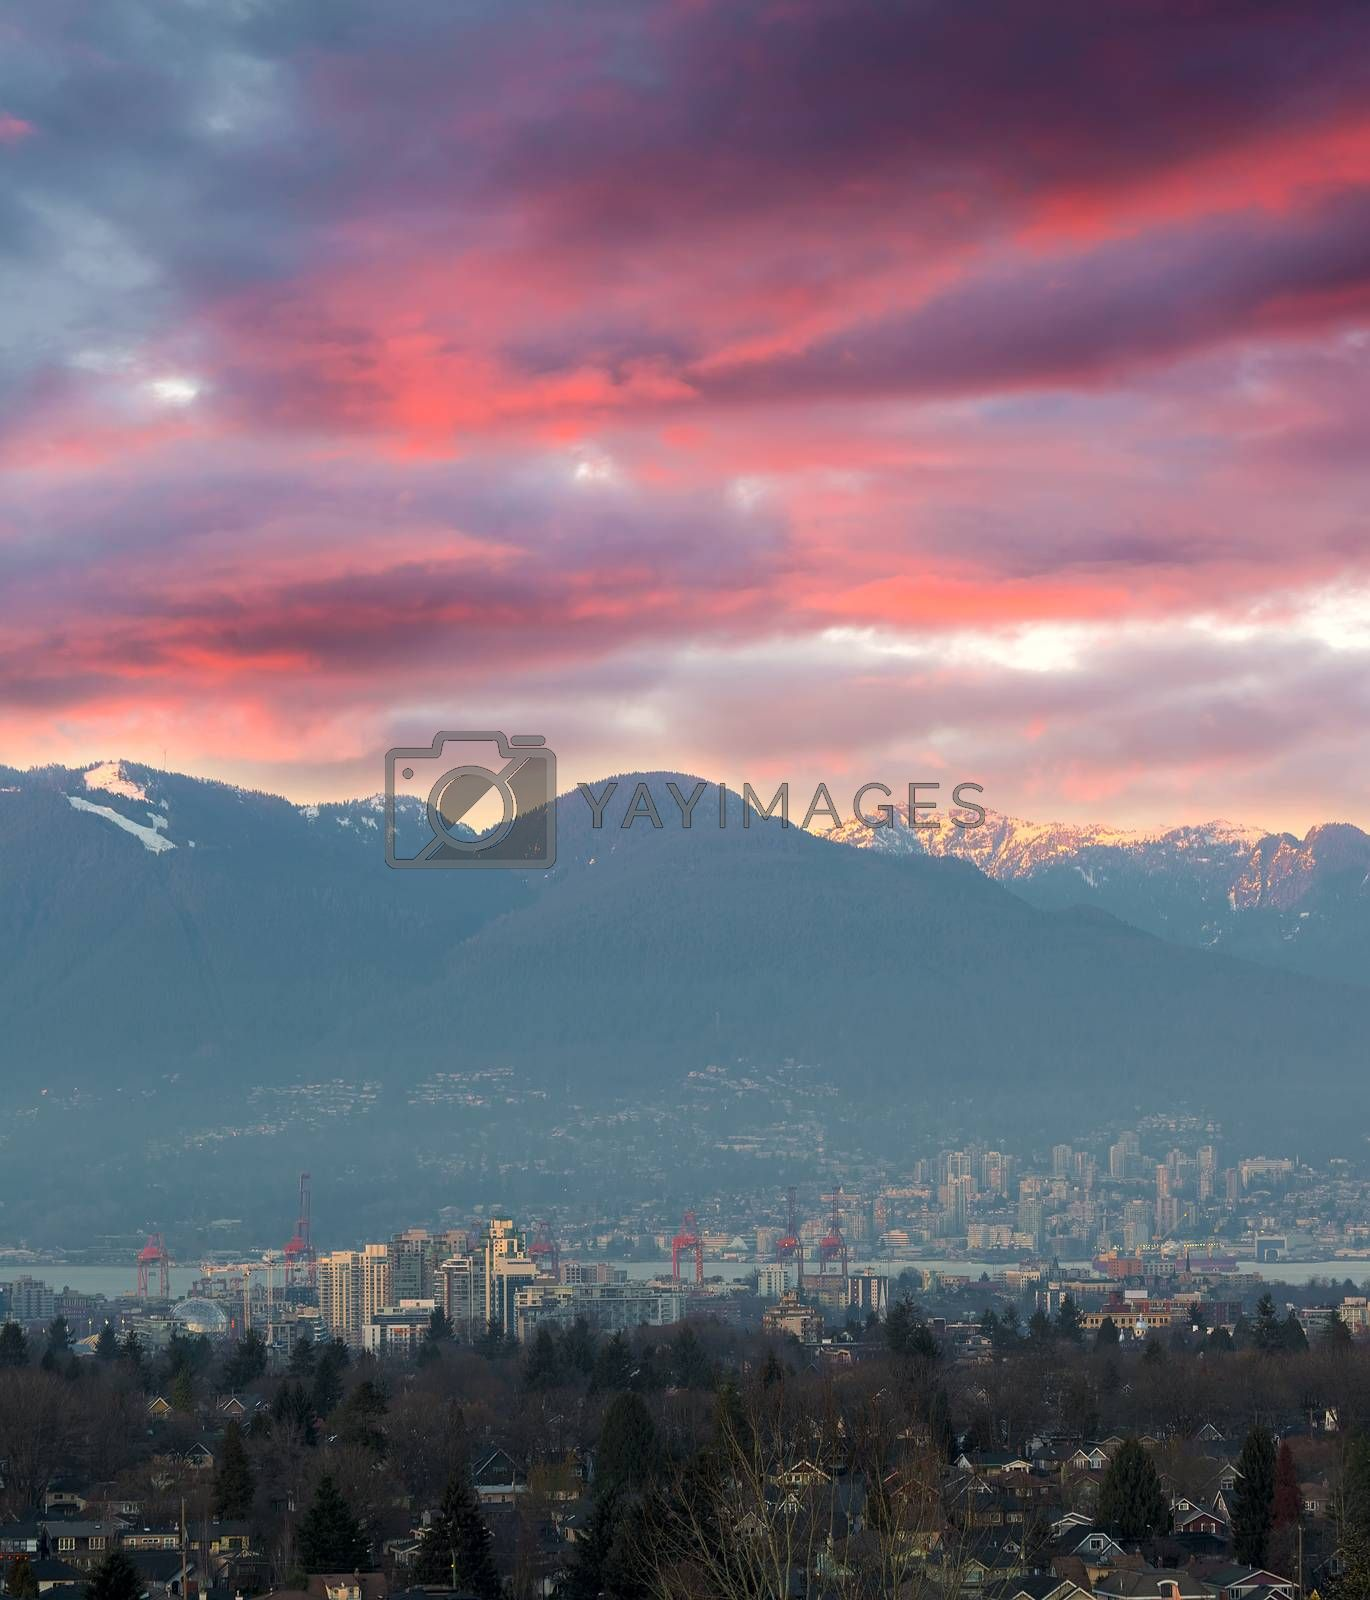 Sunset sky over city port of Vancouver BC British Columbia Canda